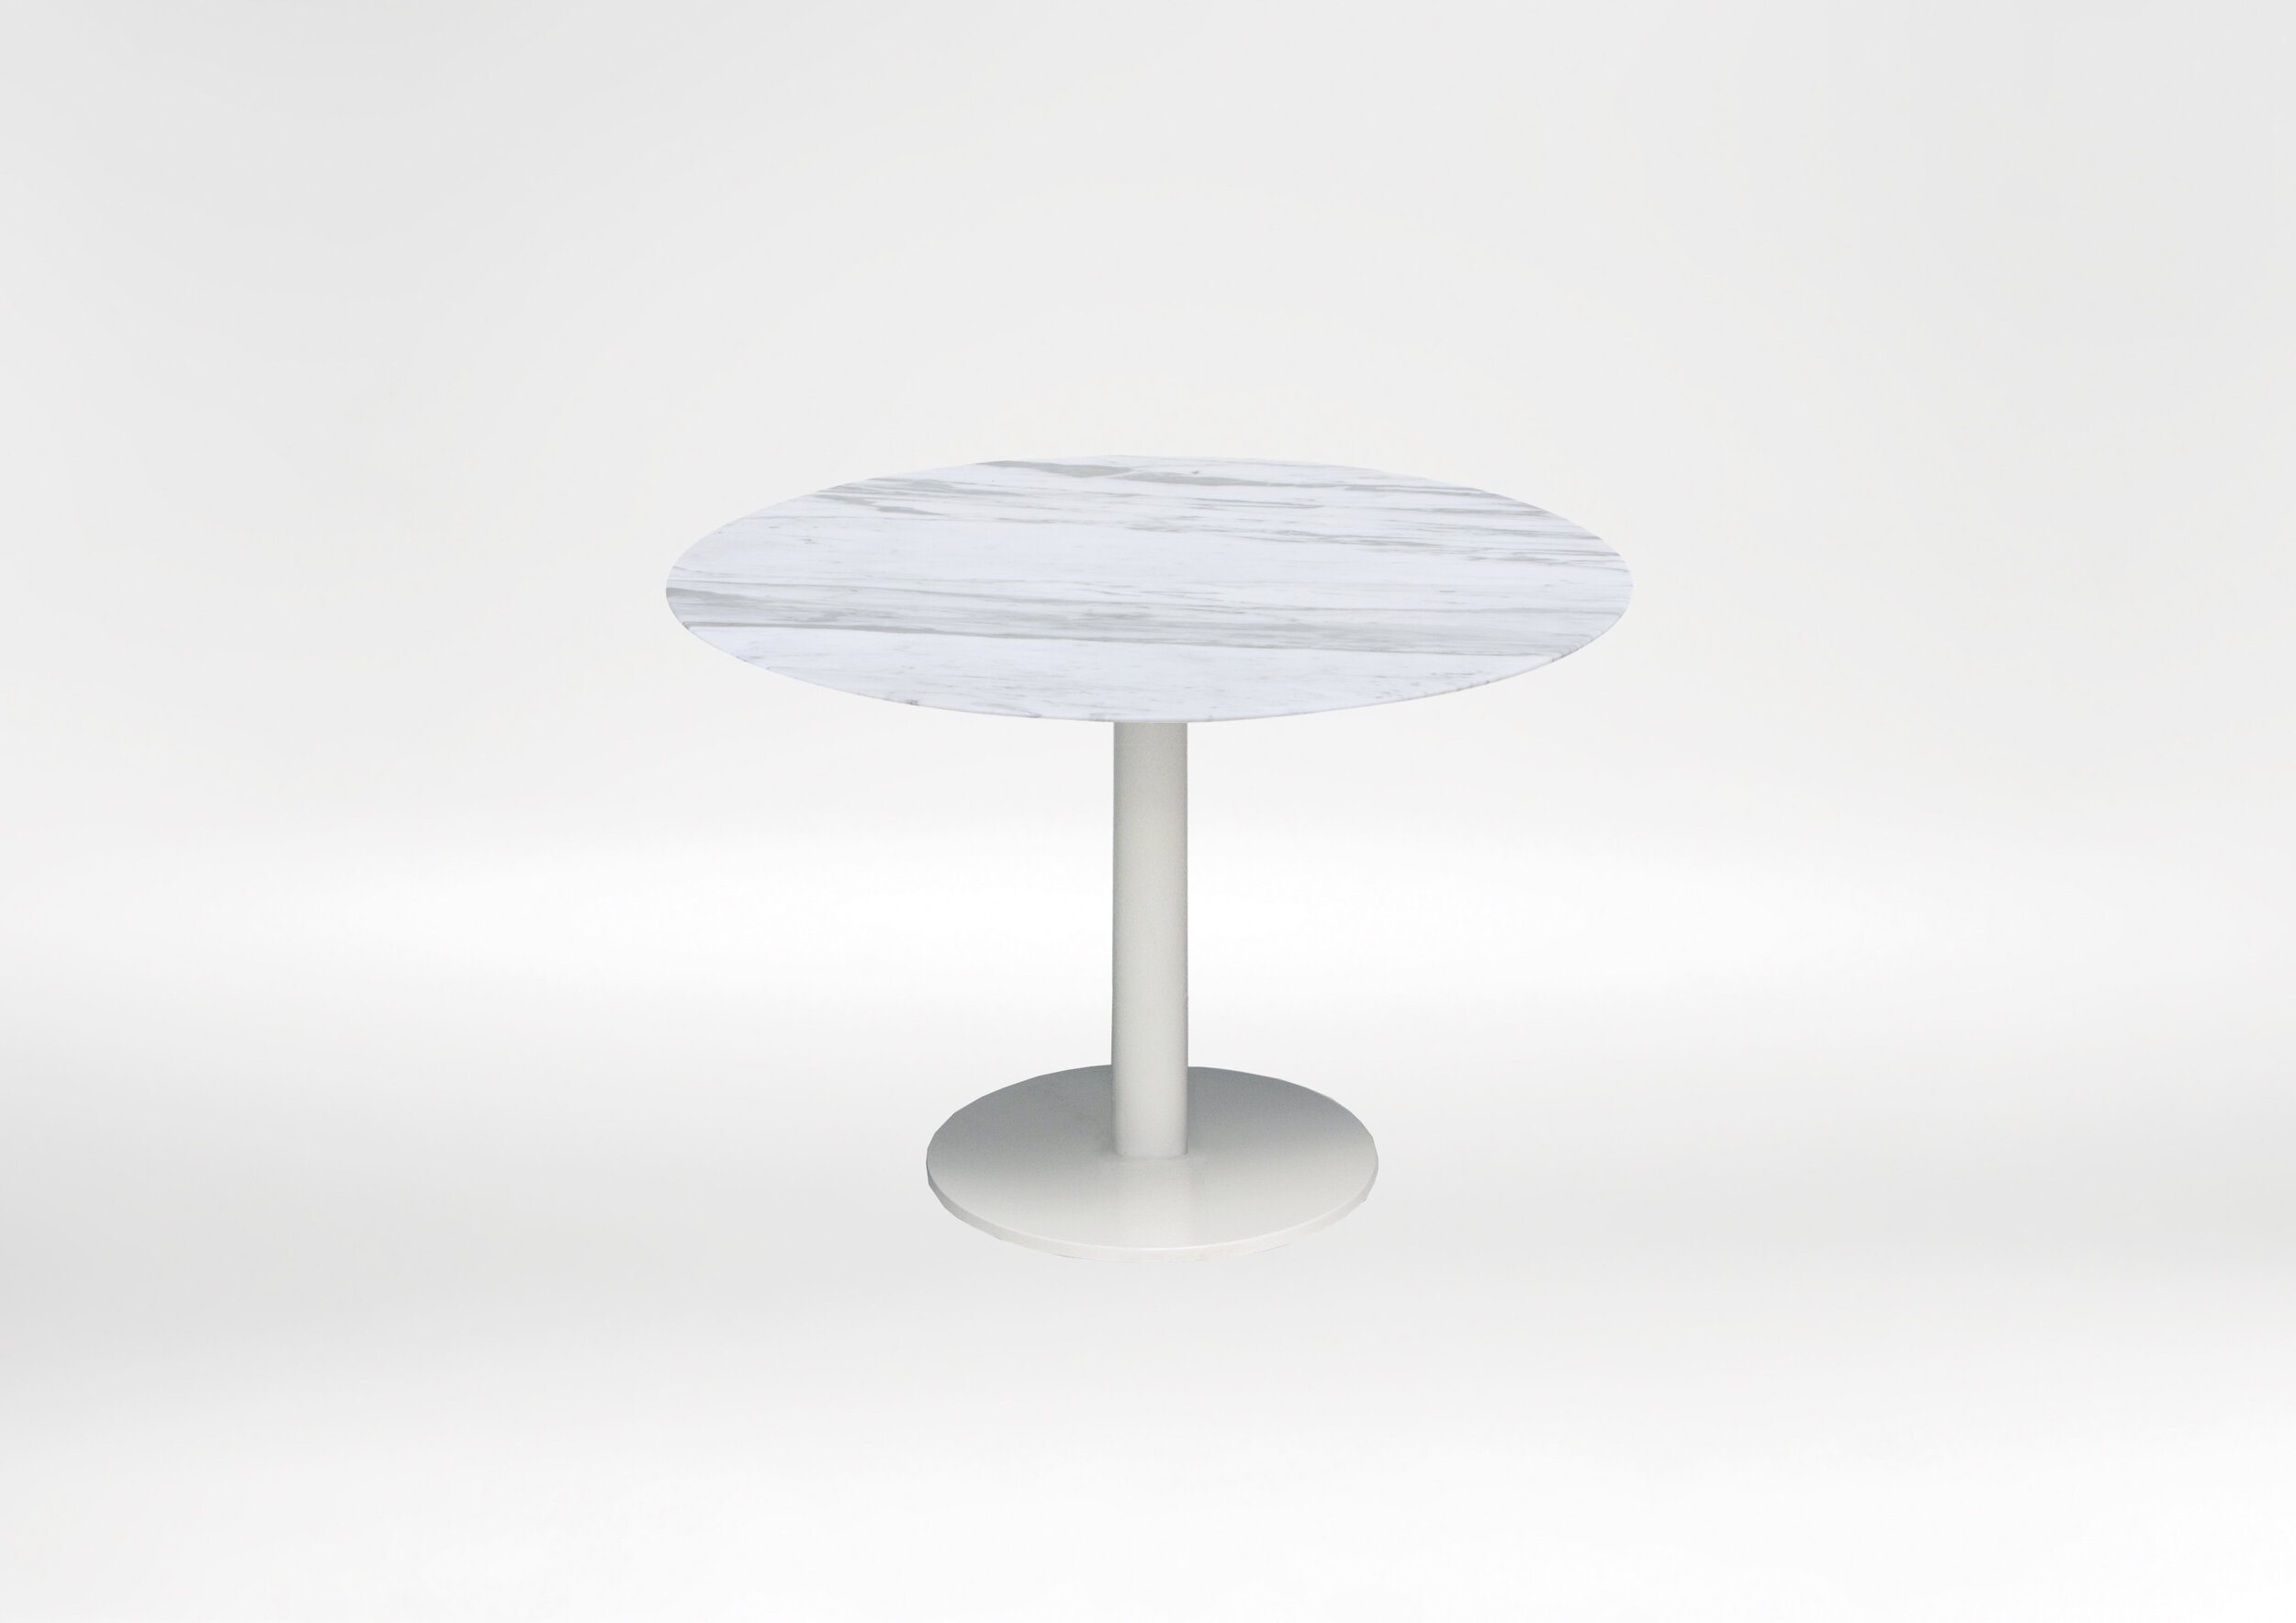 Hannah Dining Table - Compact circular contemporary dining table, perfect for smalls gathering spaces.